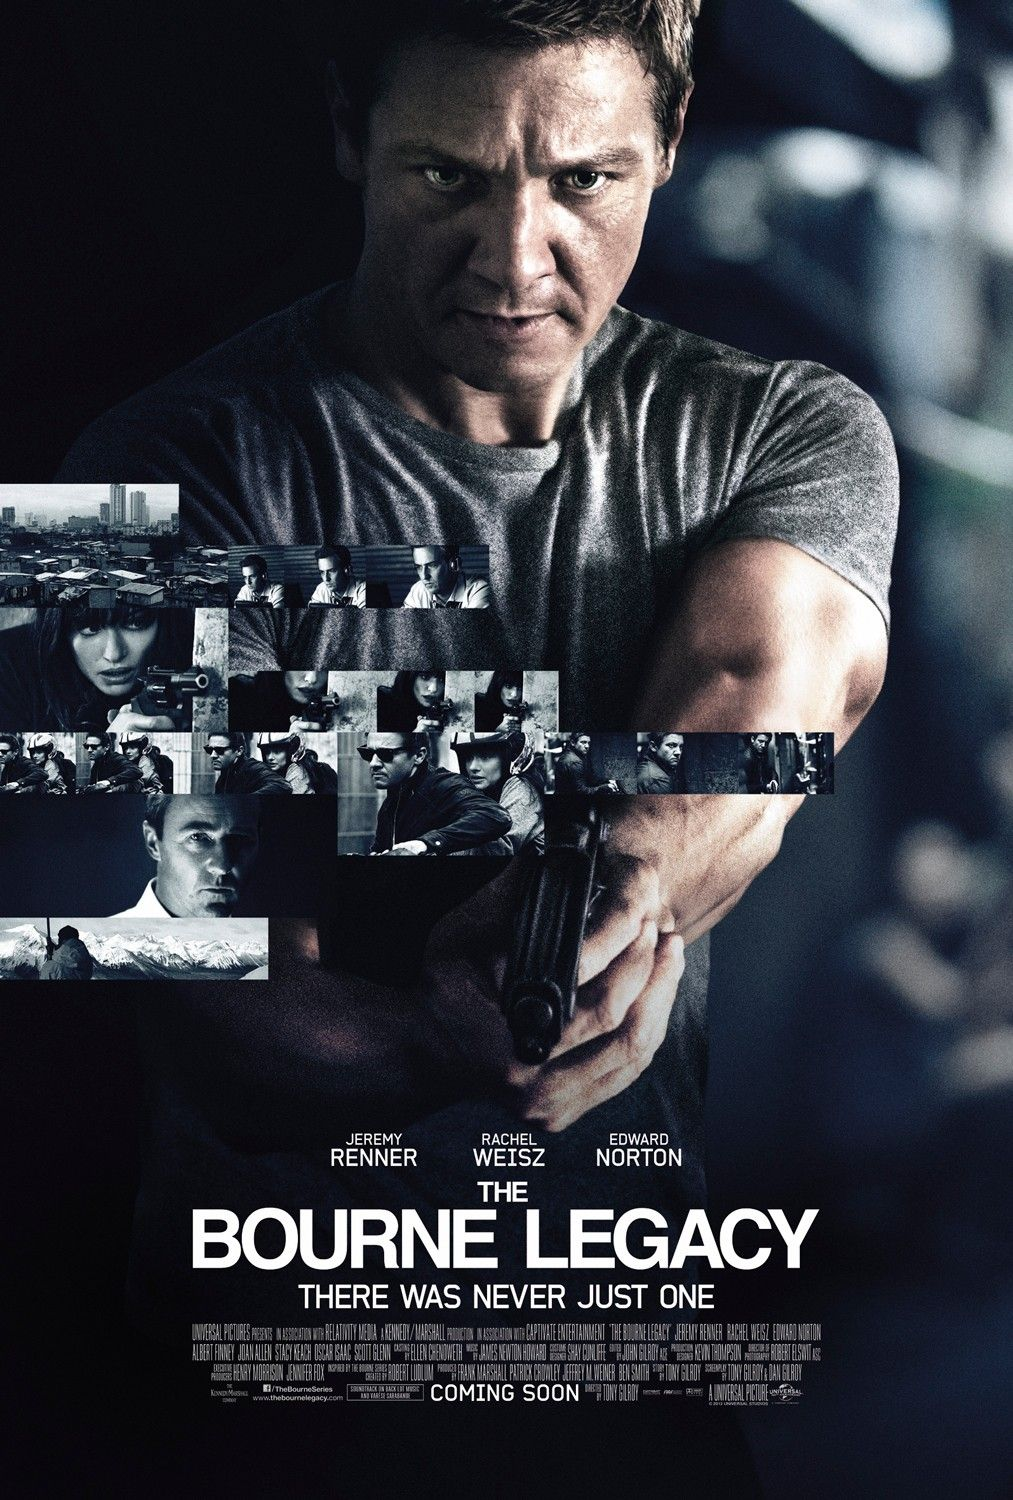 The Bourne Legacy 2012 Movie Film Cinema Yeonghwa Pelicula Poster Recommendation Mustsee Mustwatch Wor Bourne Legacy Jason Bourne Jason Bourne Movie